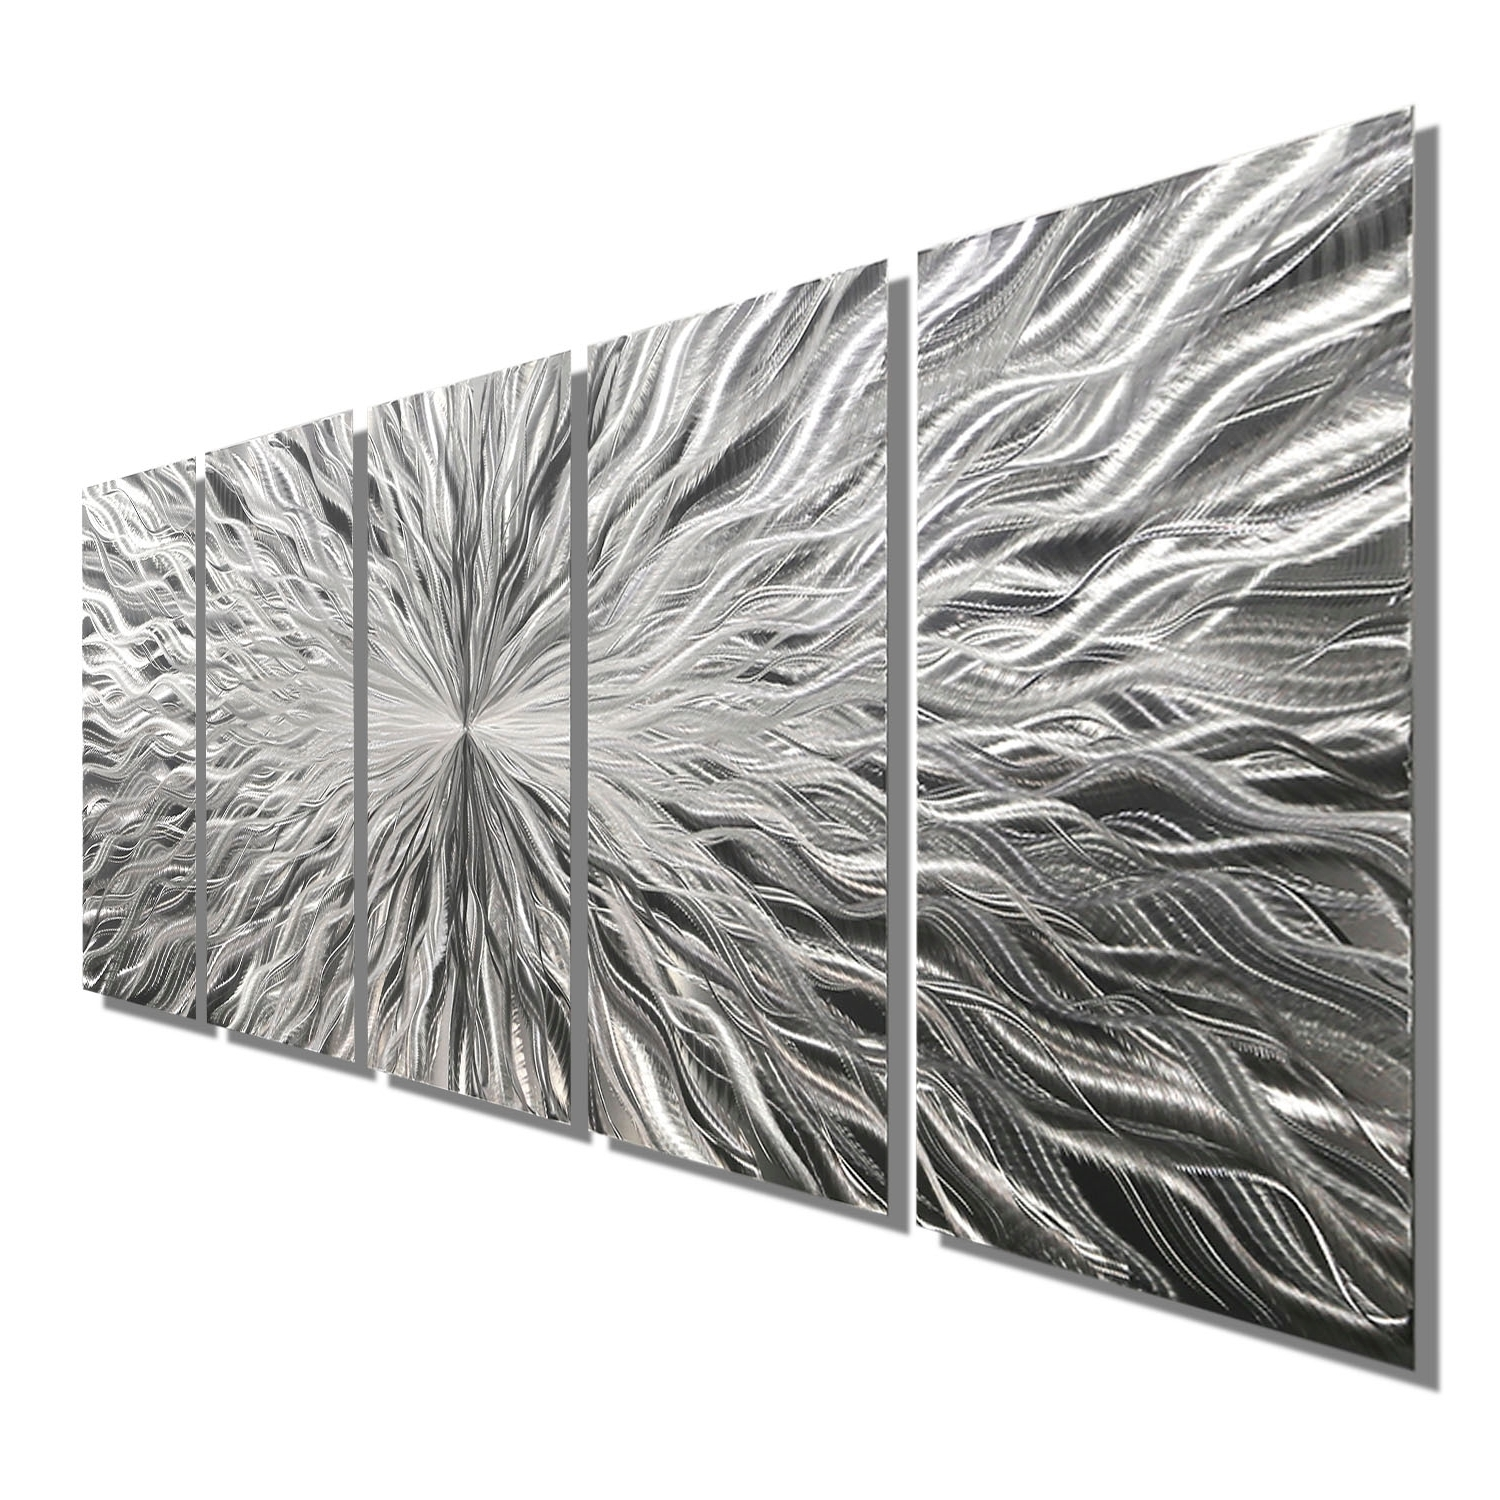 Shop Our Best Art Gallery Deals Online At Overstock With Regard To Current Cheap Metal Wall Art (View 11 of 15)